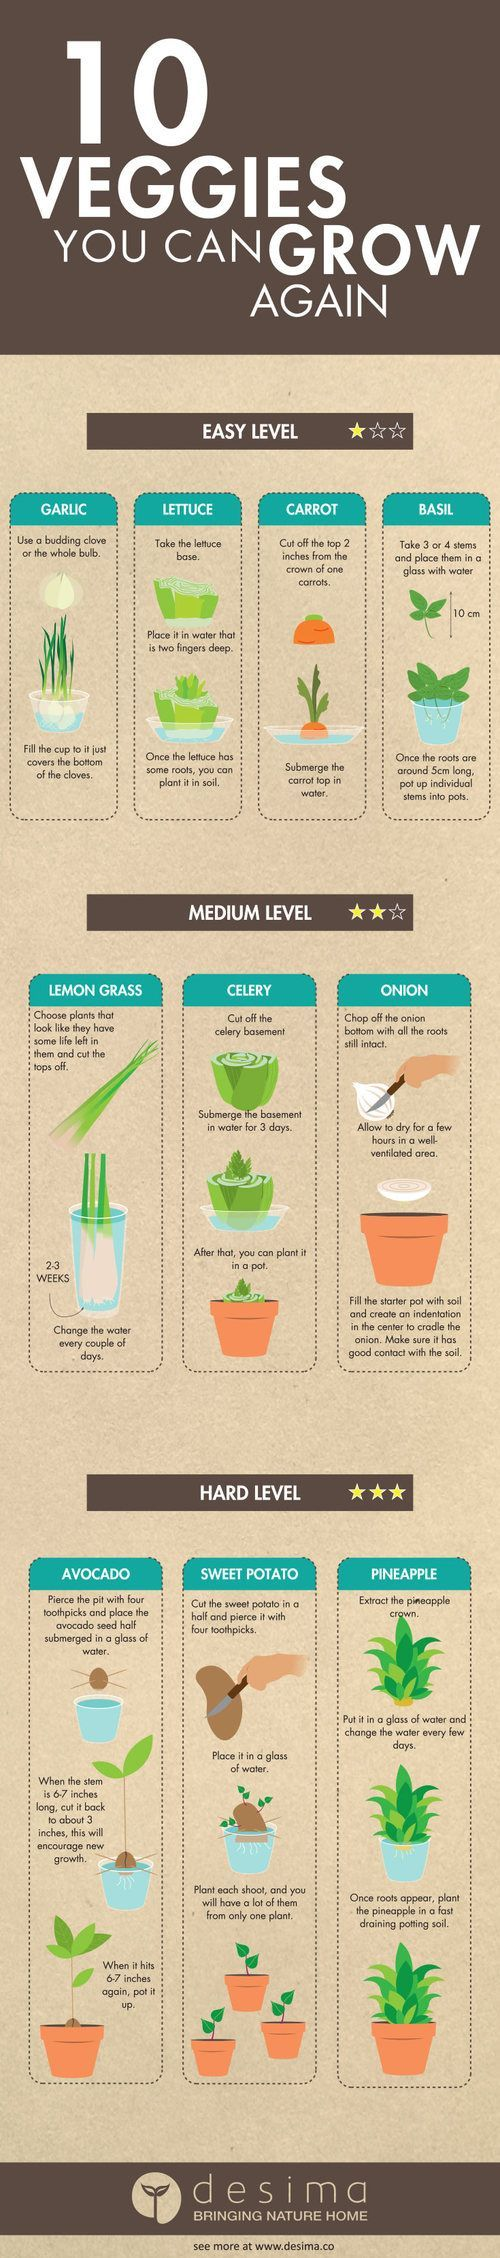 Infographic on veggies you can grow again                                                                                                                                                                                 More